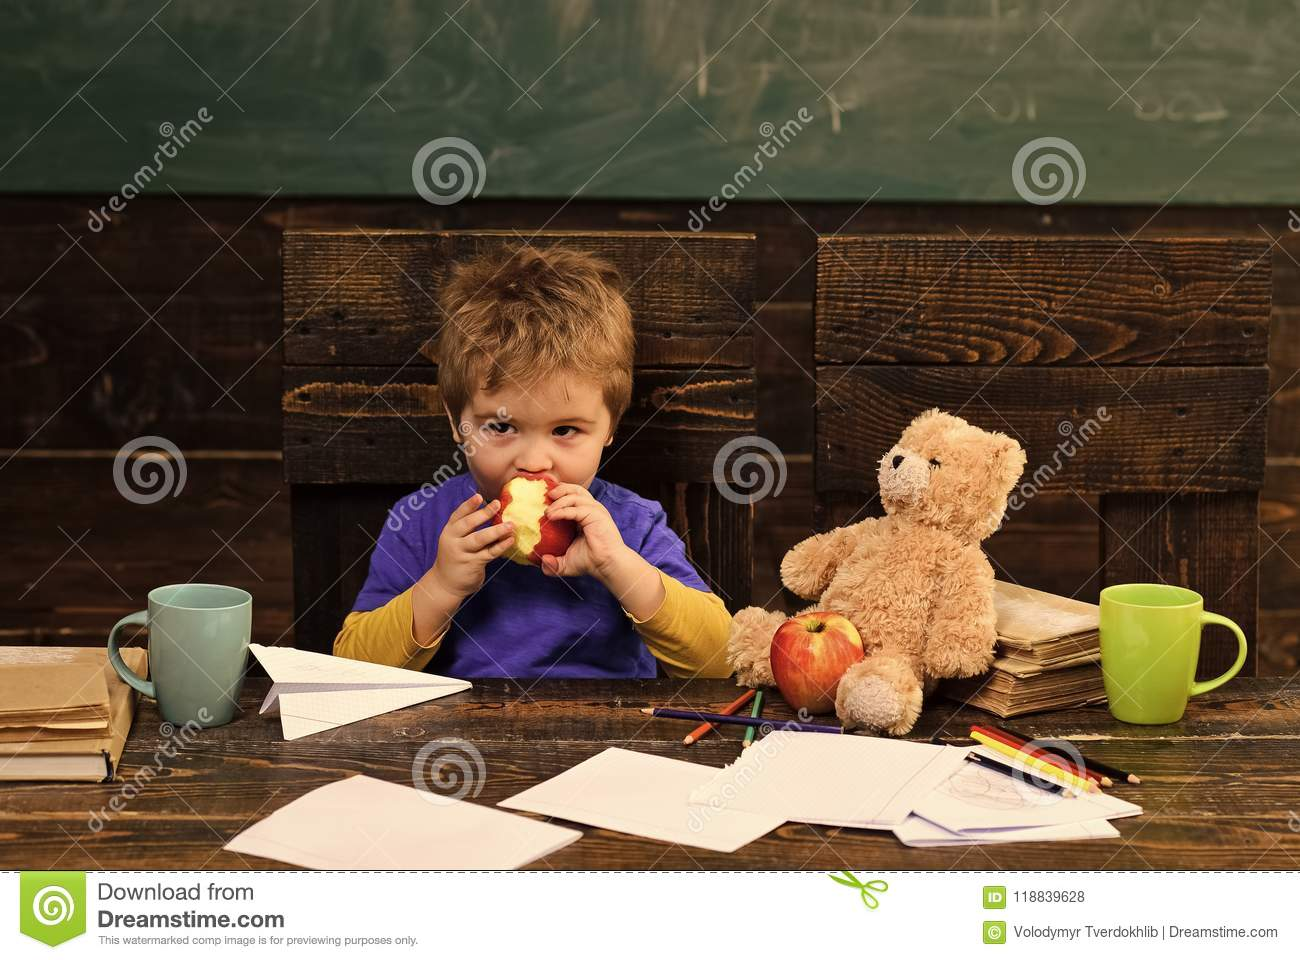 School change. School break. Hungry kid biting apple in classroom. Small boy playing with paper plane and teddy bear